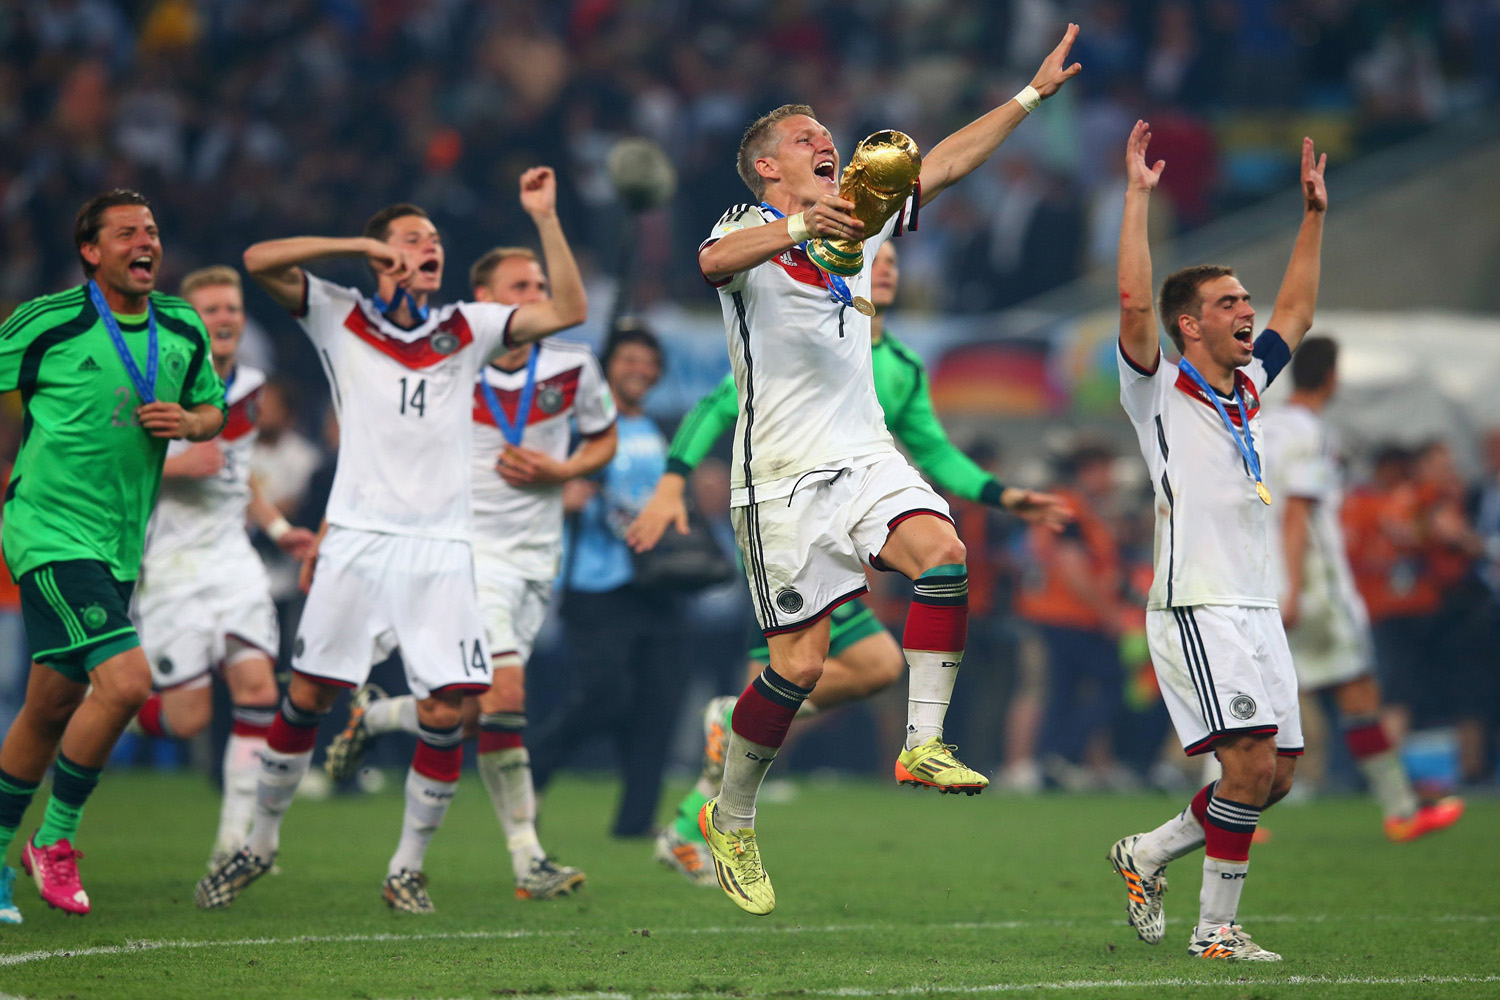 Bastian Schweinsteiger  of Germany and his teammates celebrate with the World Cup trophy  after defeating Argentina 1-0 in extra time during the 2014 FIFA World Cup Brazil Final match between Germany and Argentina at Maracana Stadium in Rio de Janeiro on July 13, 2014.